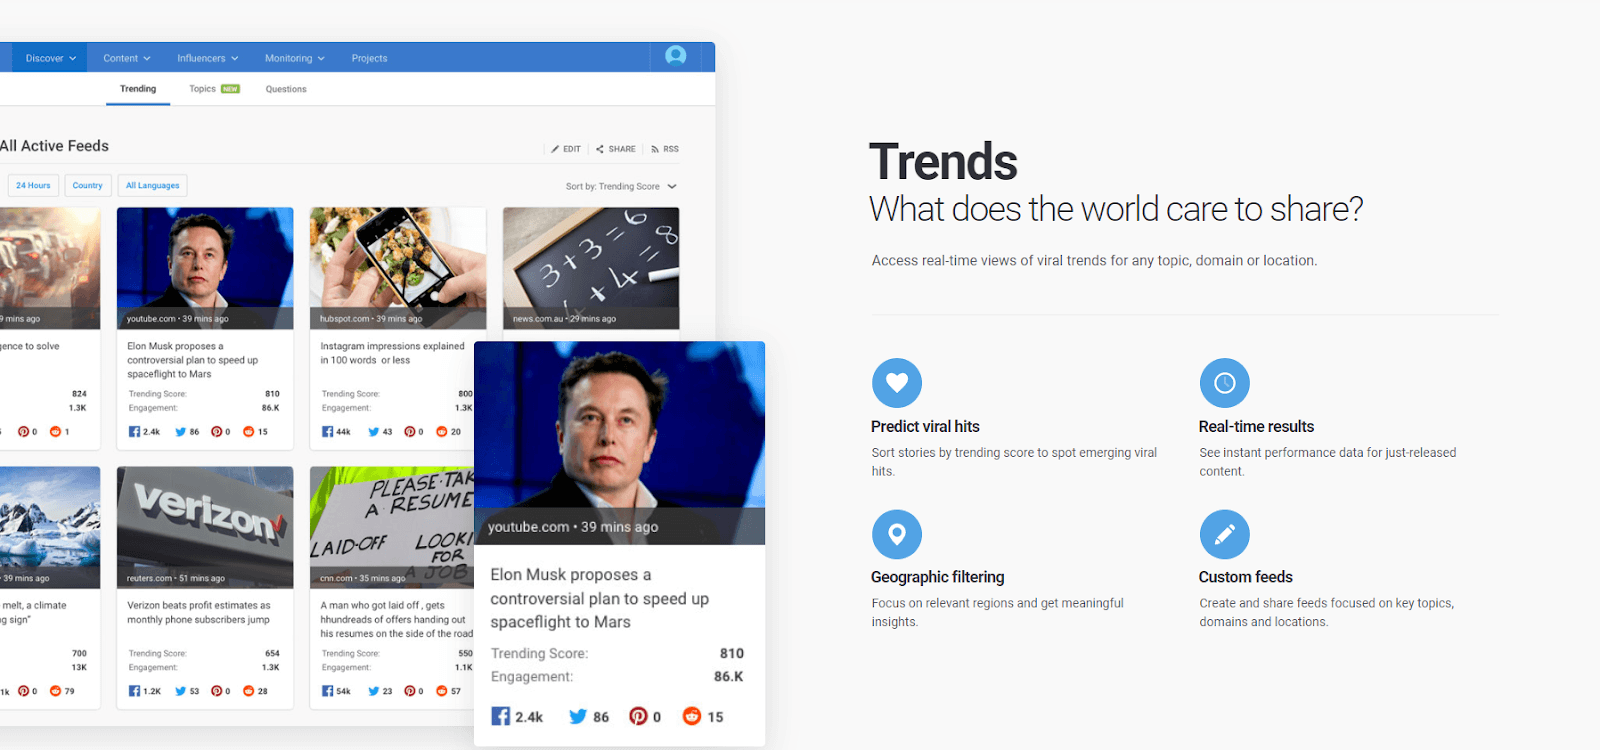 Get to know the trending topics with Buzzsumo